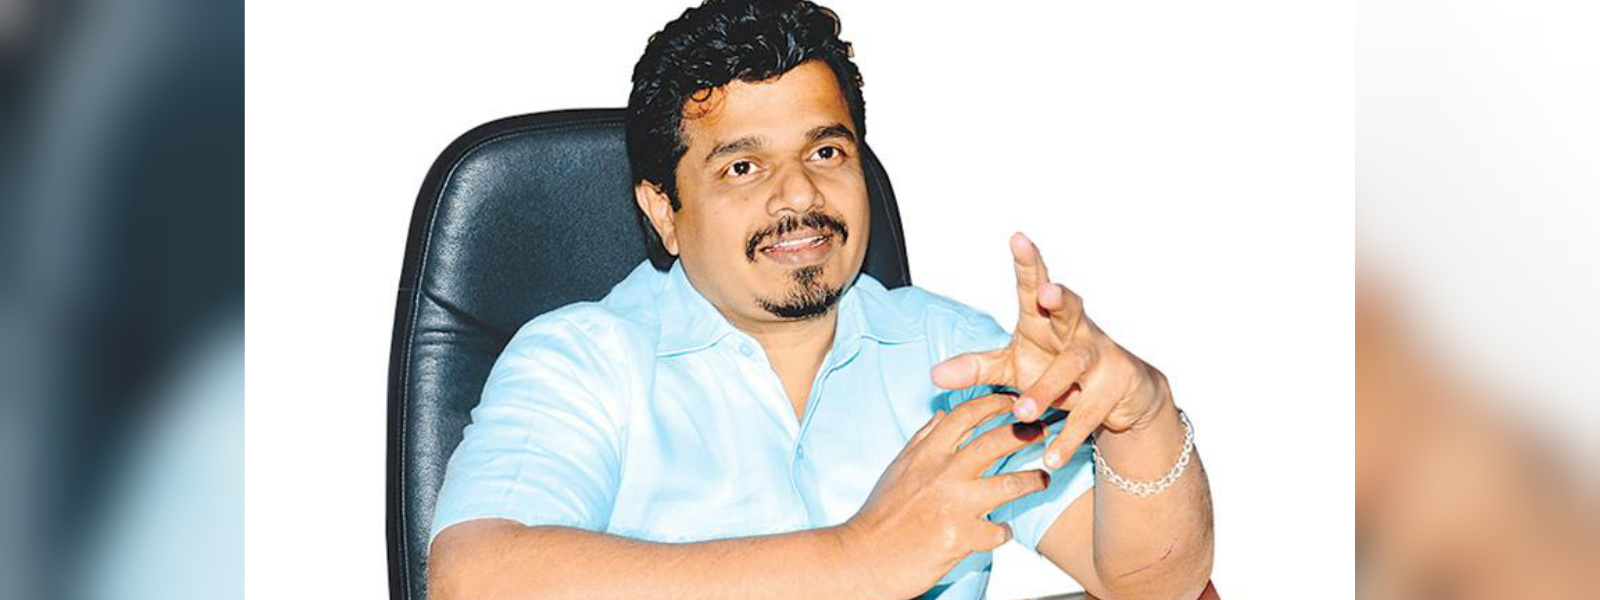 Weerakumara Dissanayake warns those who jeer them